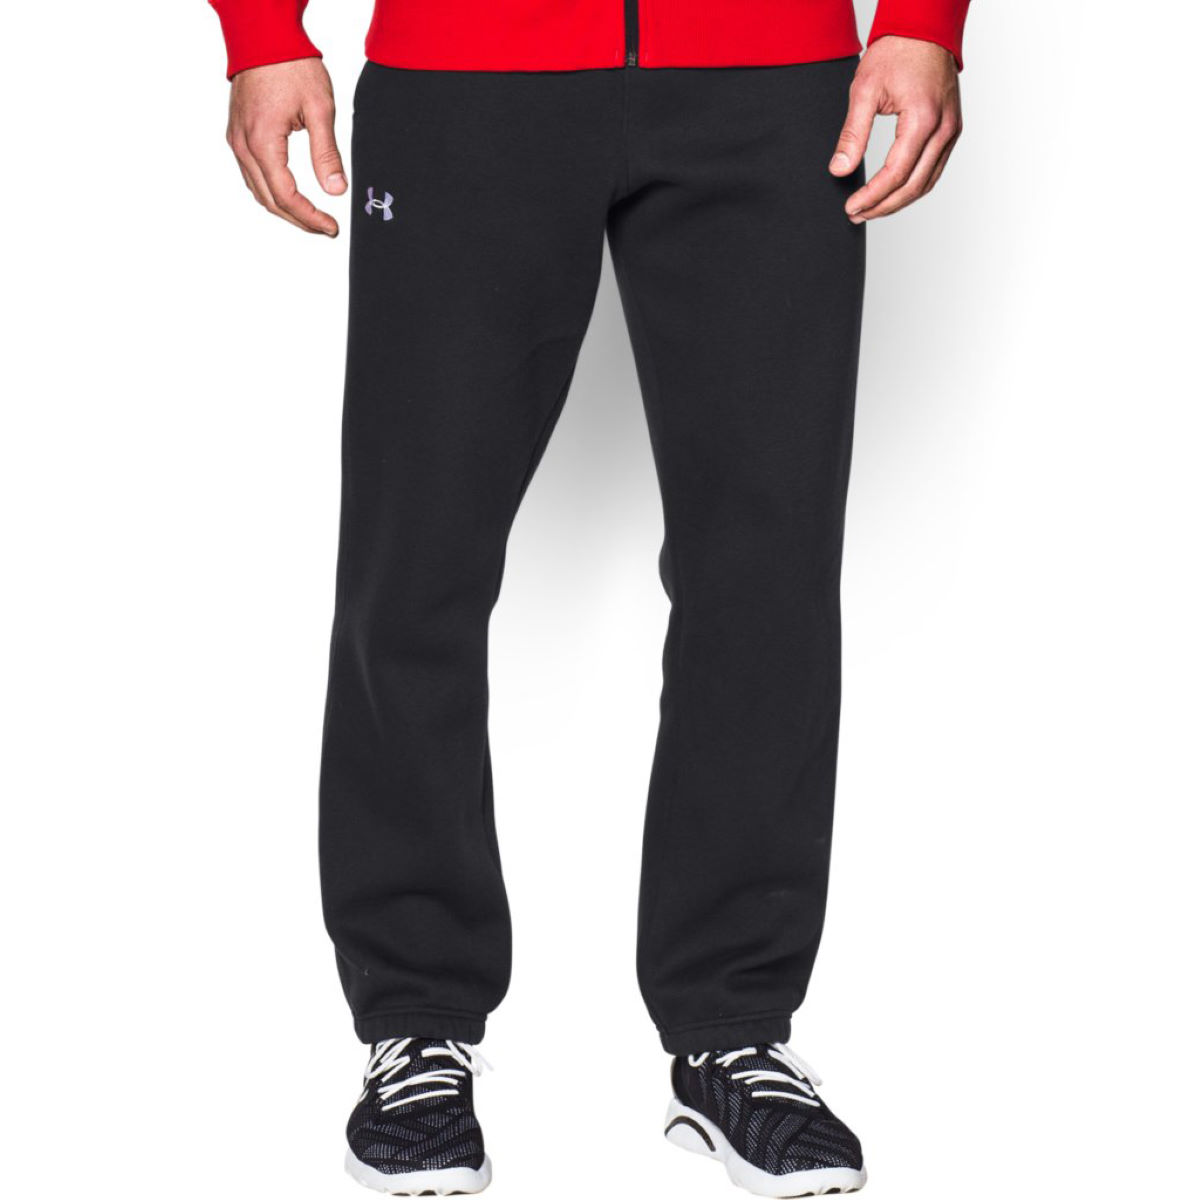 Under Armour Storm Rival Cuffed Pants (SS16) - Medium Black/White